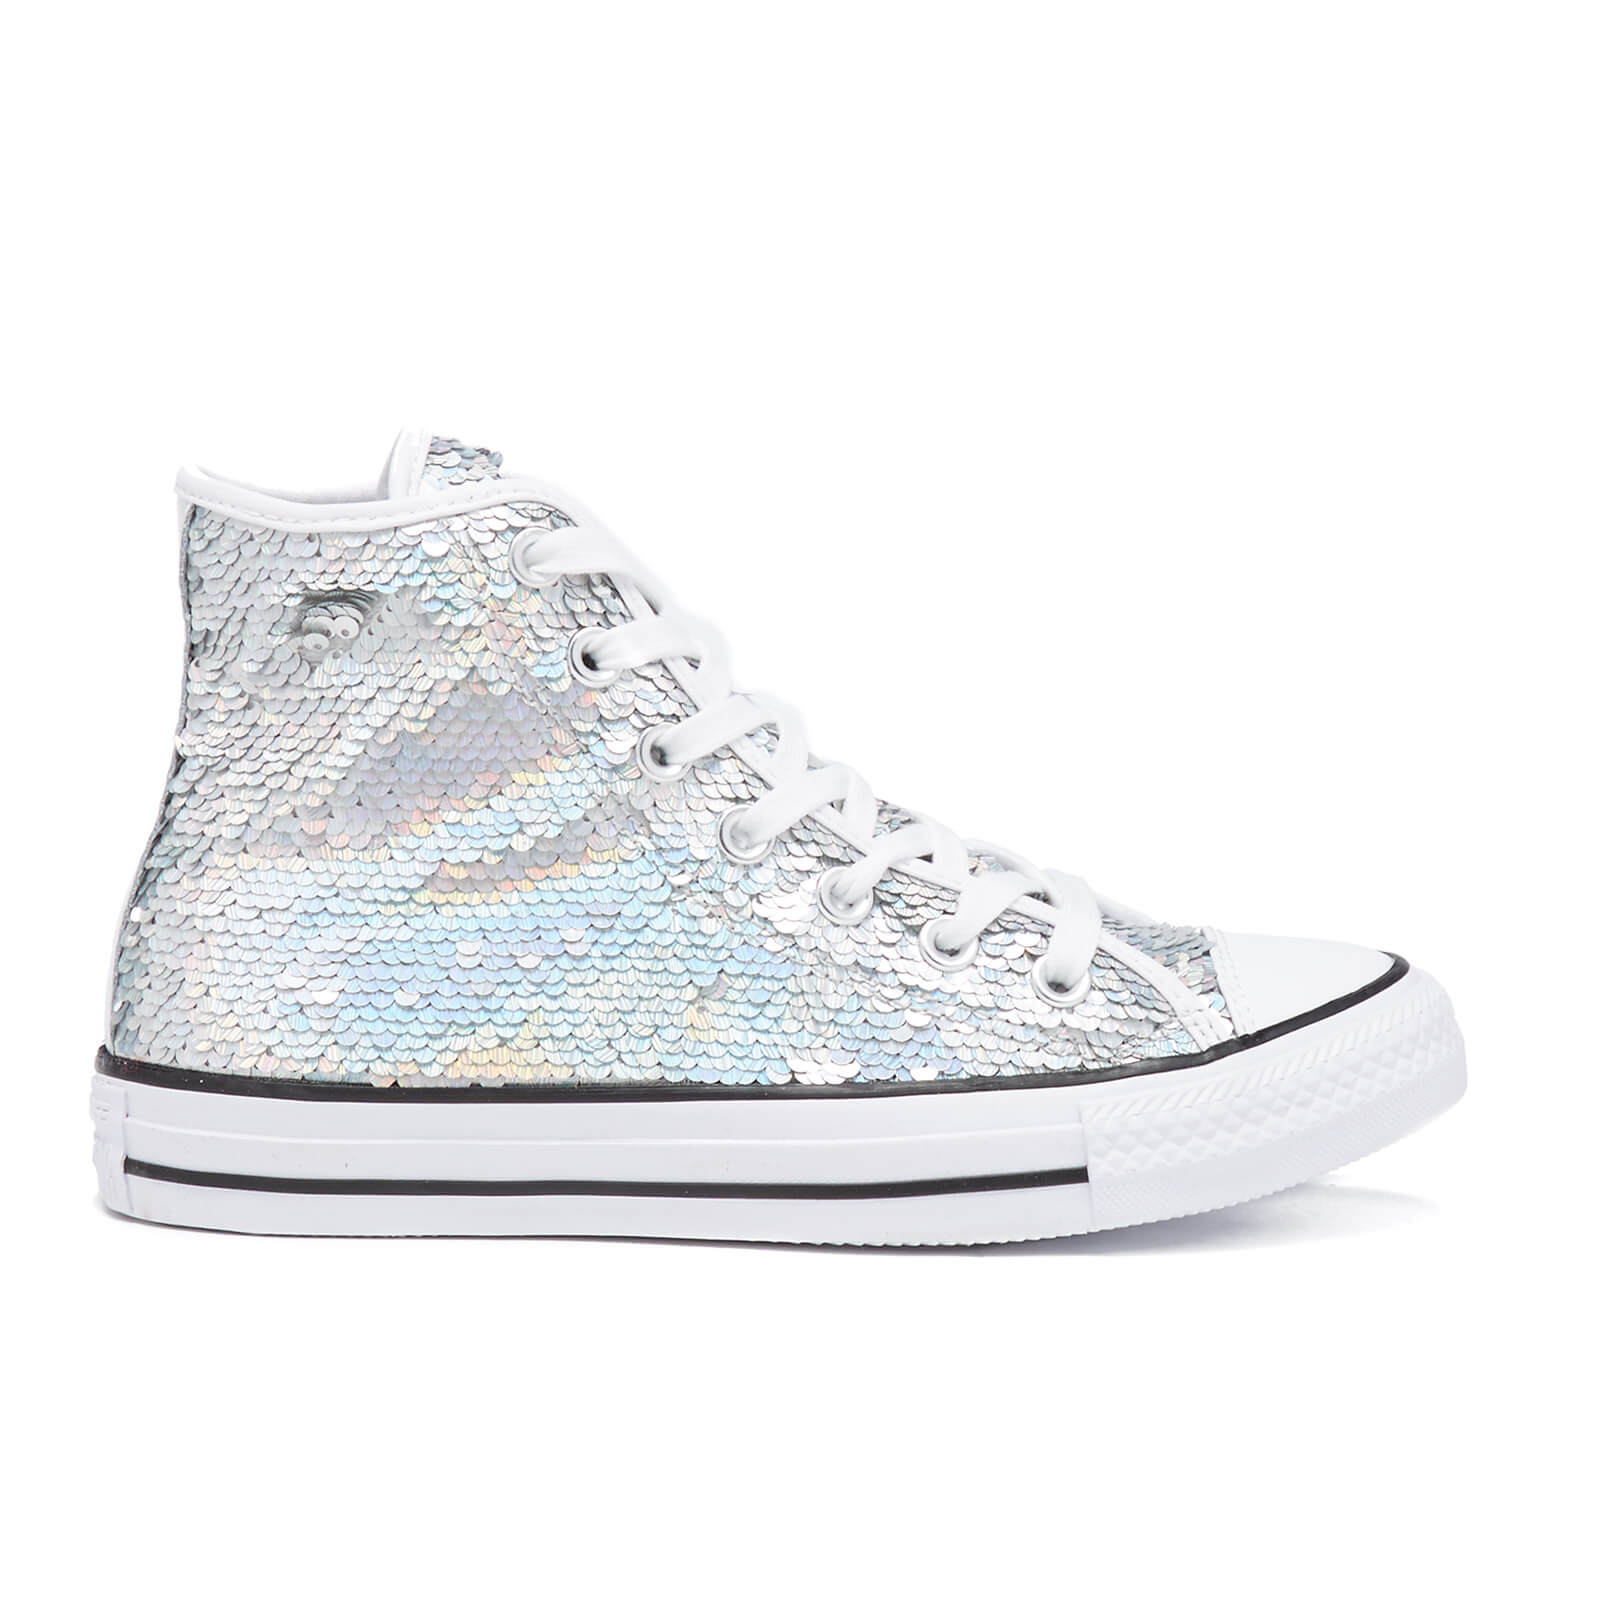 fbb482d195b9c0 ... Converse Women s Chuck Taylor All Star Holiday Party Hi-Top Trainers -  Silver White